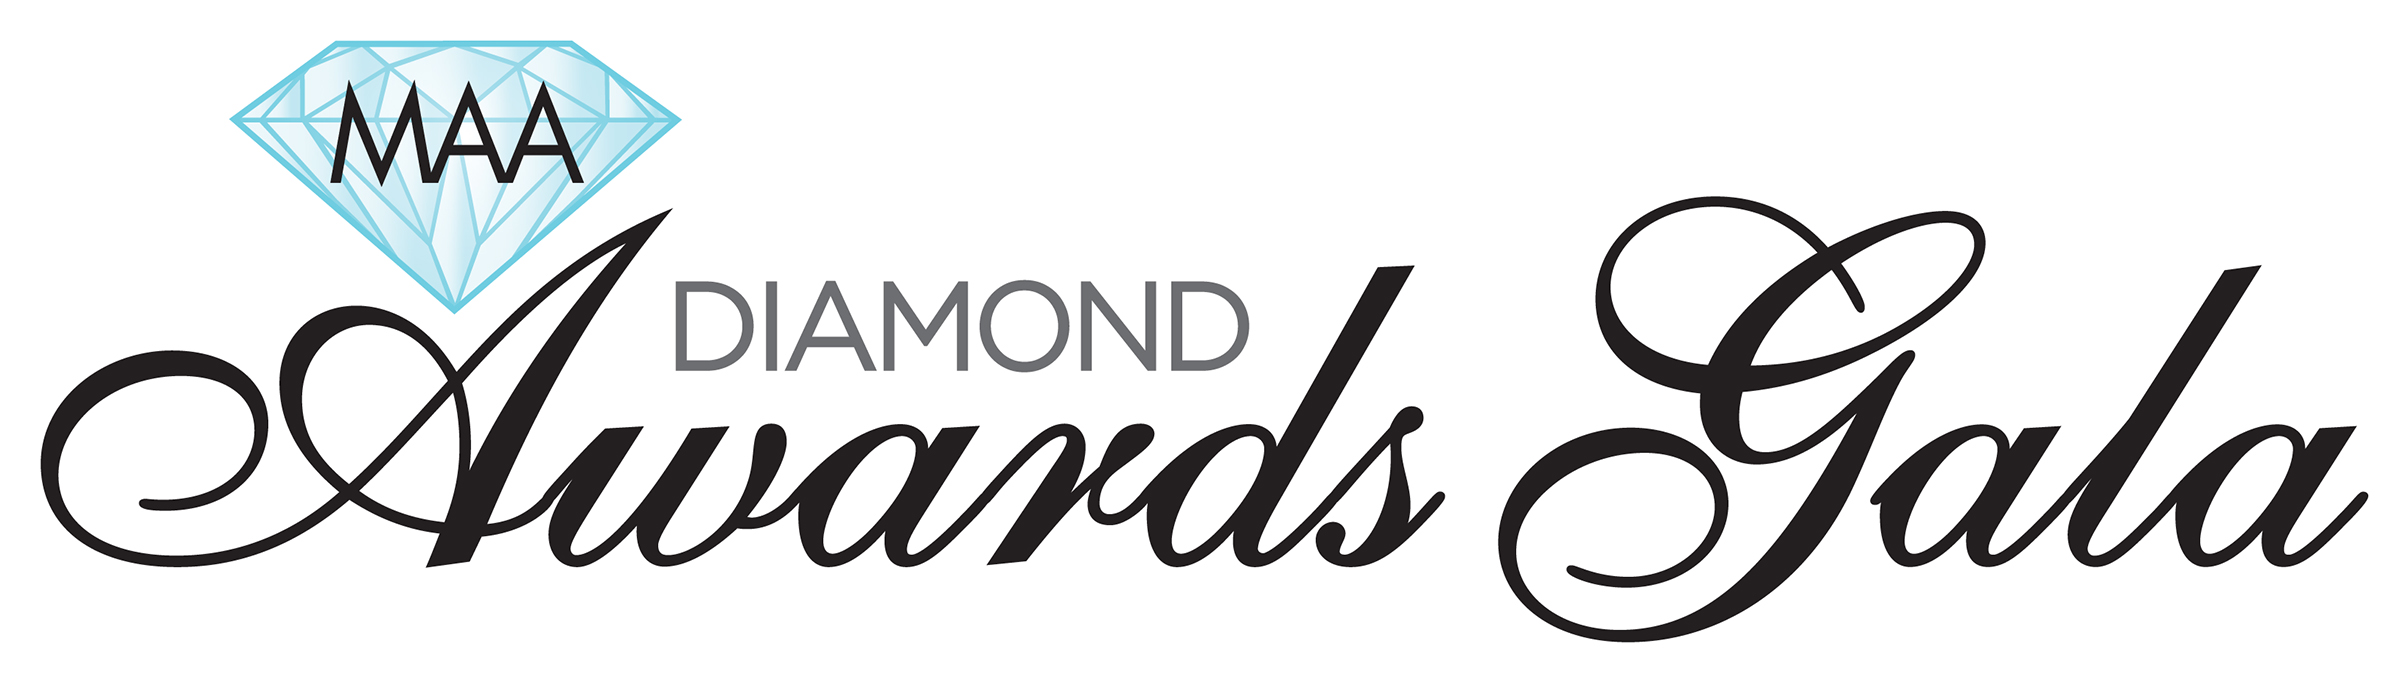 DiamondAwardsLogoB (002).jpg